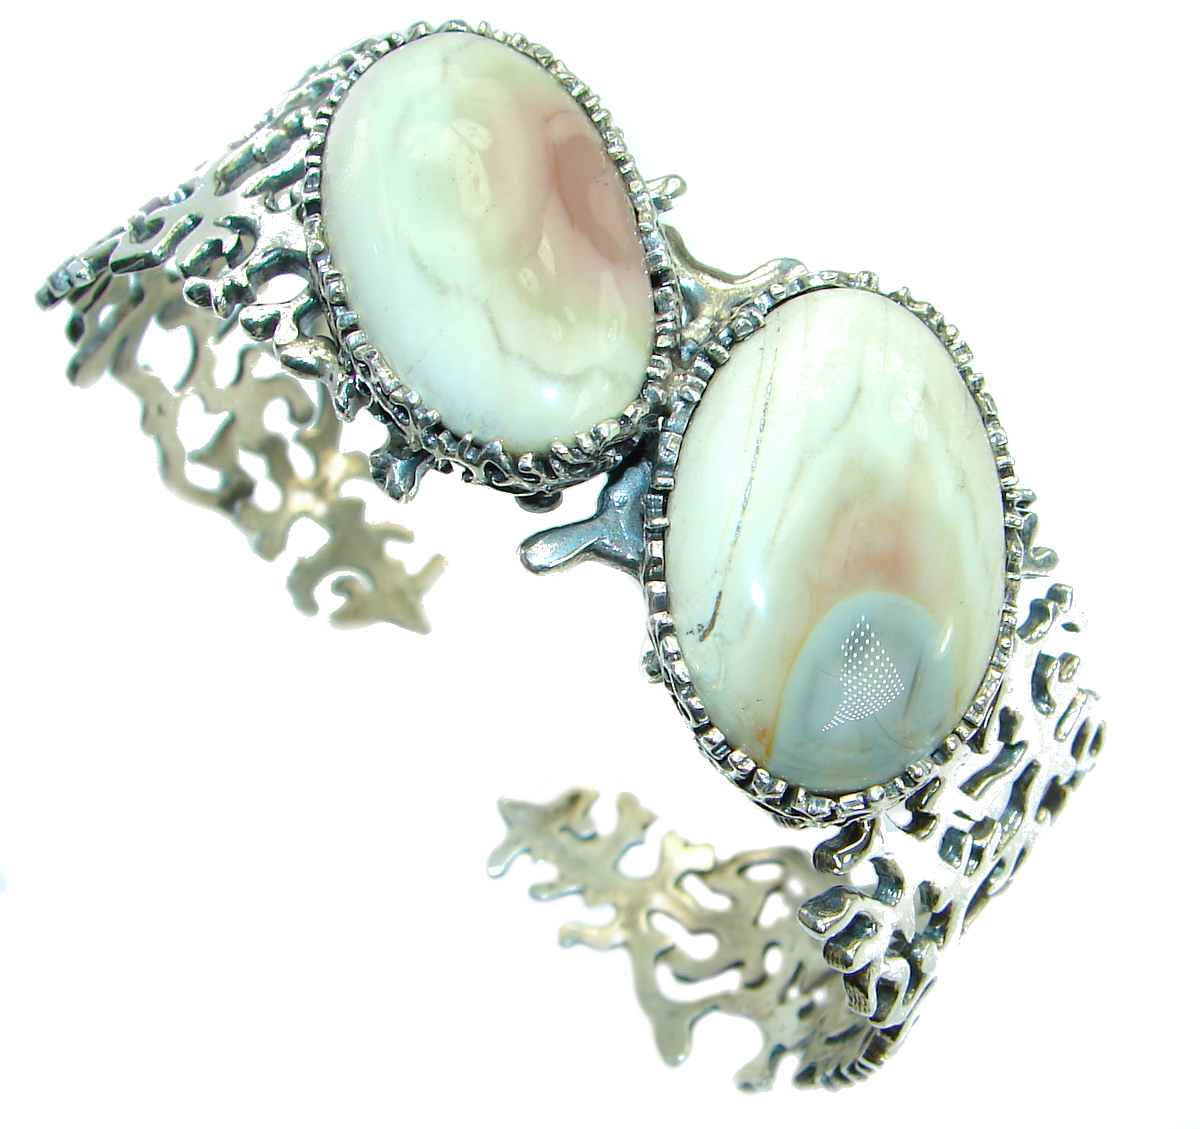 Real Treasure Royal Imperial Jasper .925 Sterling Silver handcrafted Bracelet / Cuff